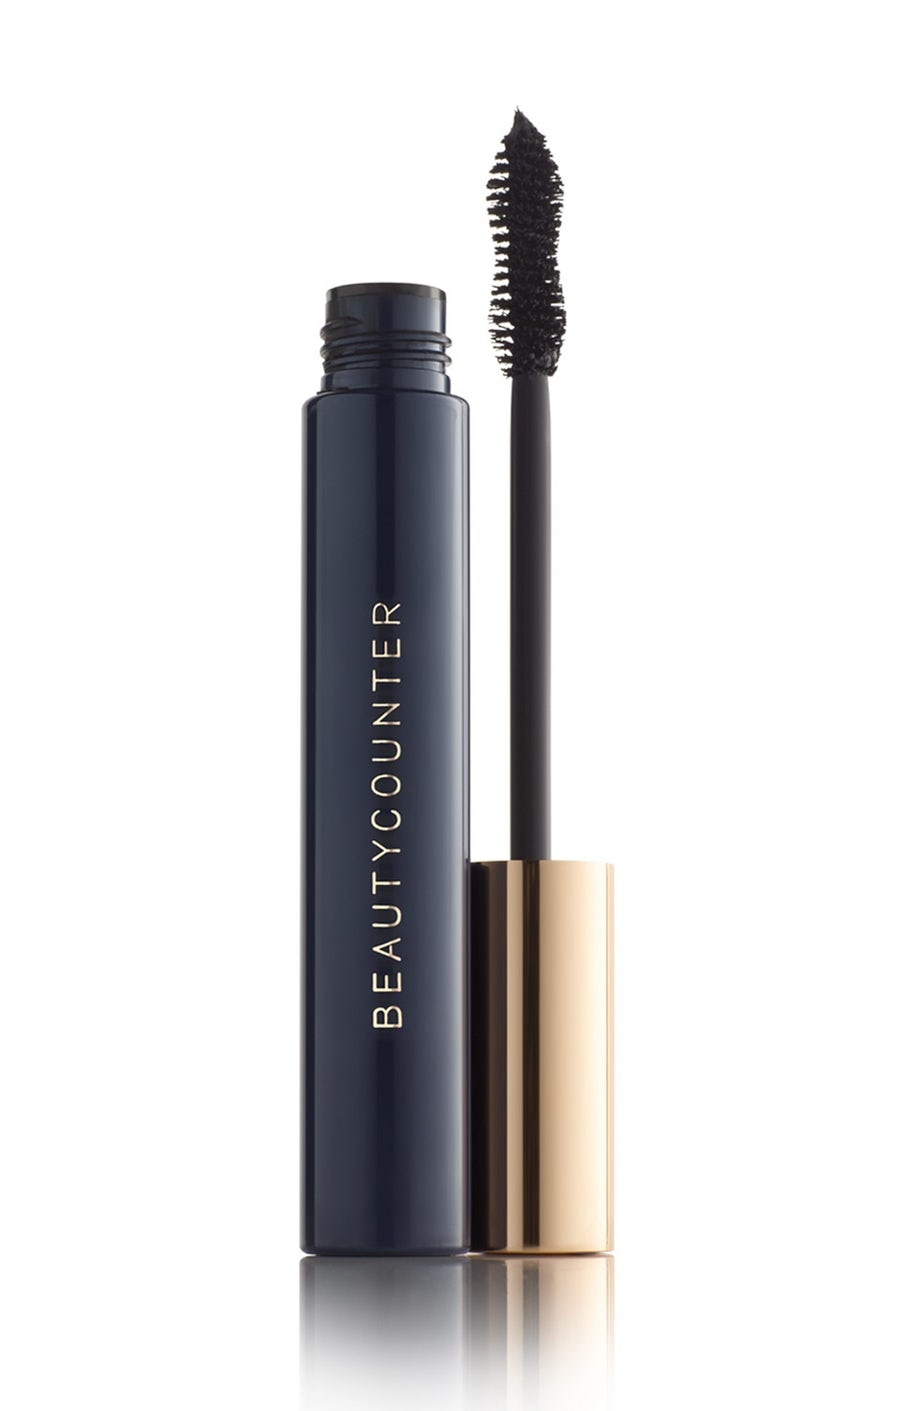 Mascara was one of the first things I swapped out when I made the move to cleaner beauty options. Why would I want weird chemicals near my eyes?!? This one does a great job of making my lashes look lush and myself a lot more awake than I probably am.